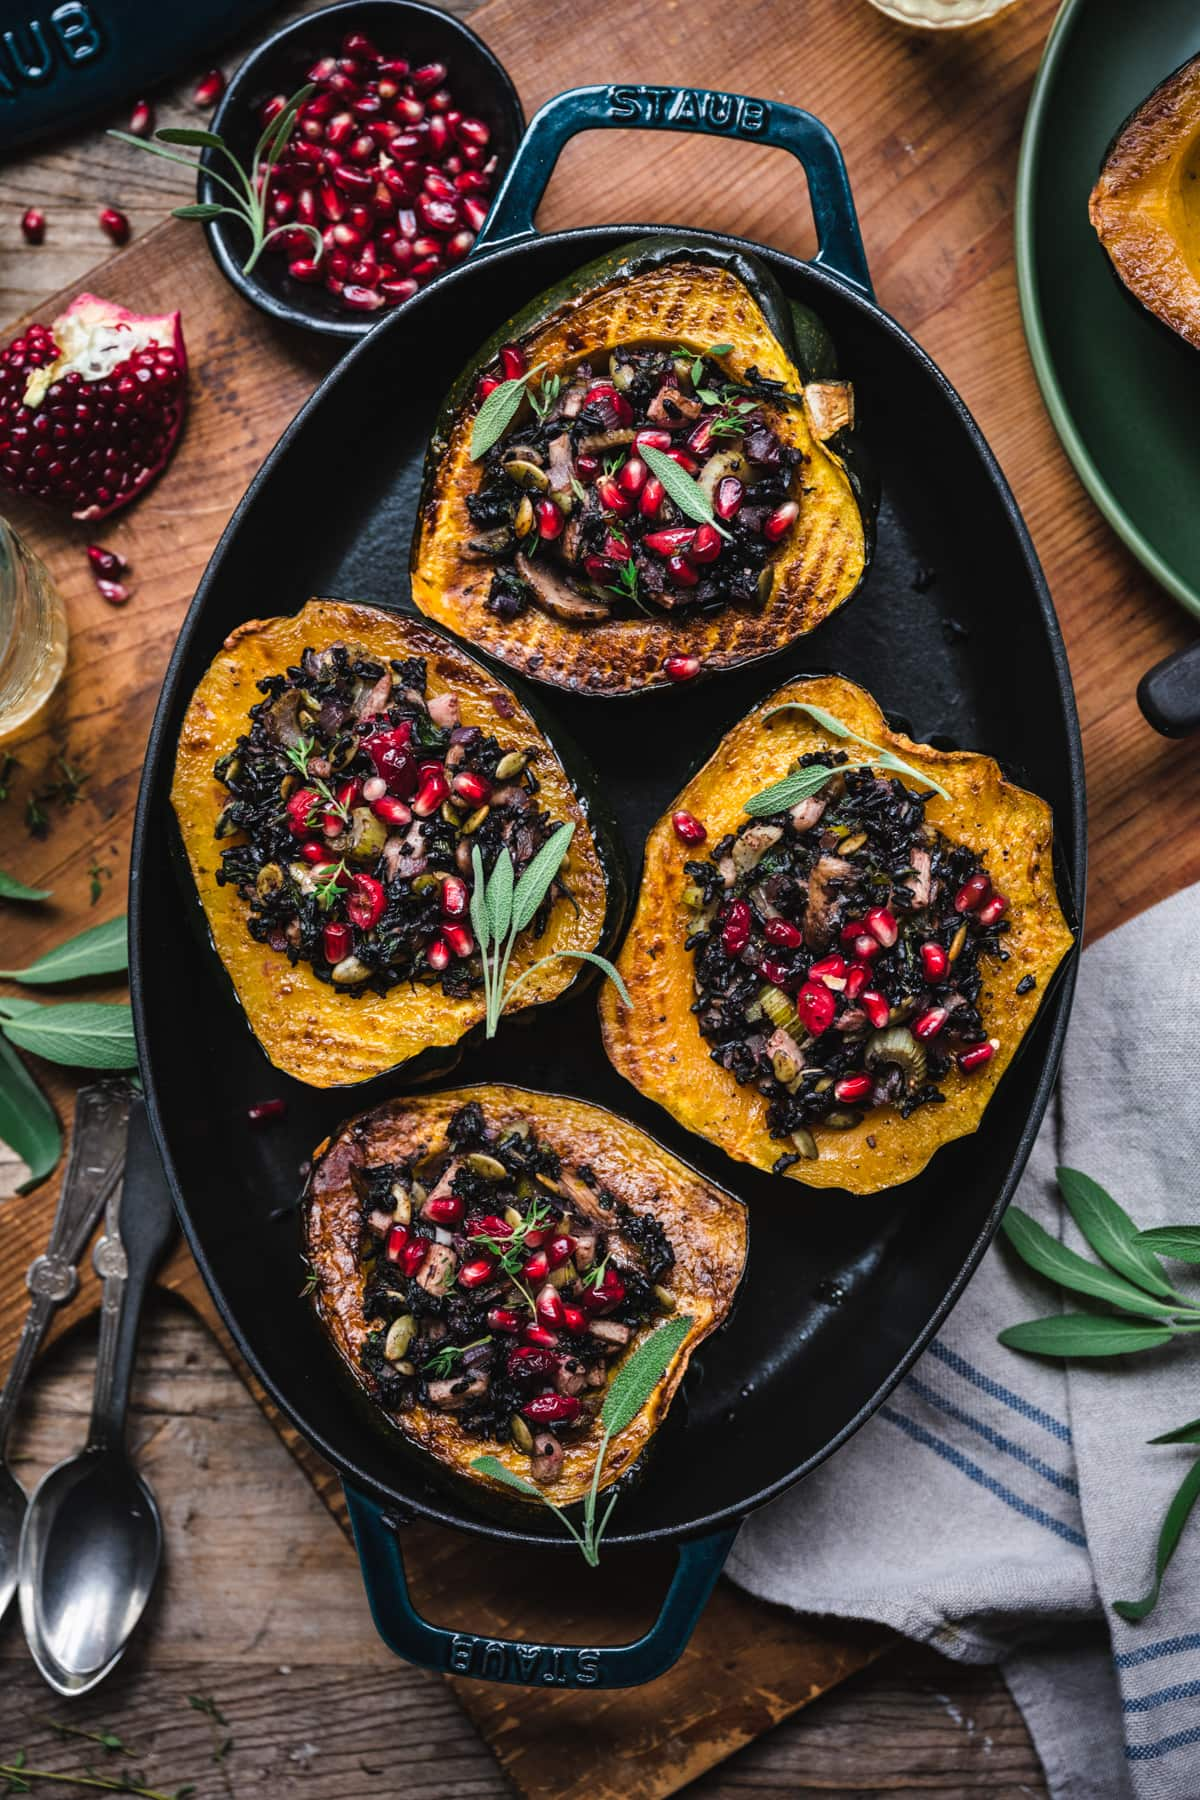 overhead view of vegan stuffed acorn squash with black rice, mushrooms and pomegranate seeds on top.